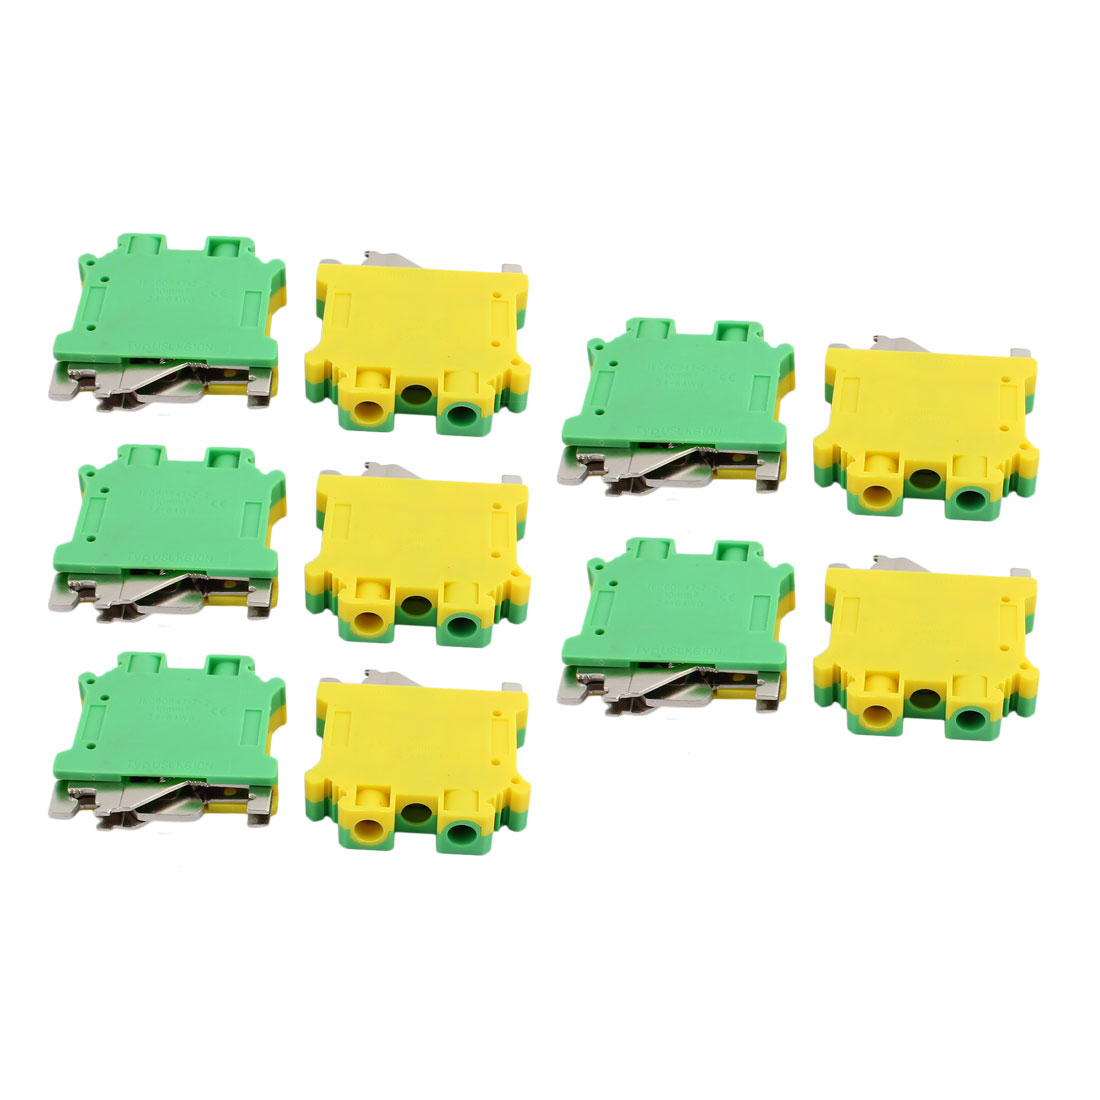 10Pcs 44x42x10mm 10mm2 24-6AWG Universal Grounding Terminal Block Yellow Green